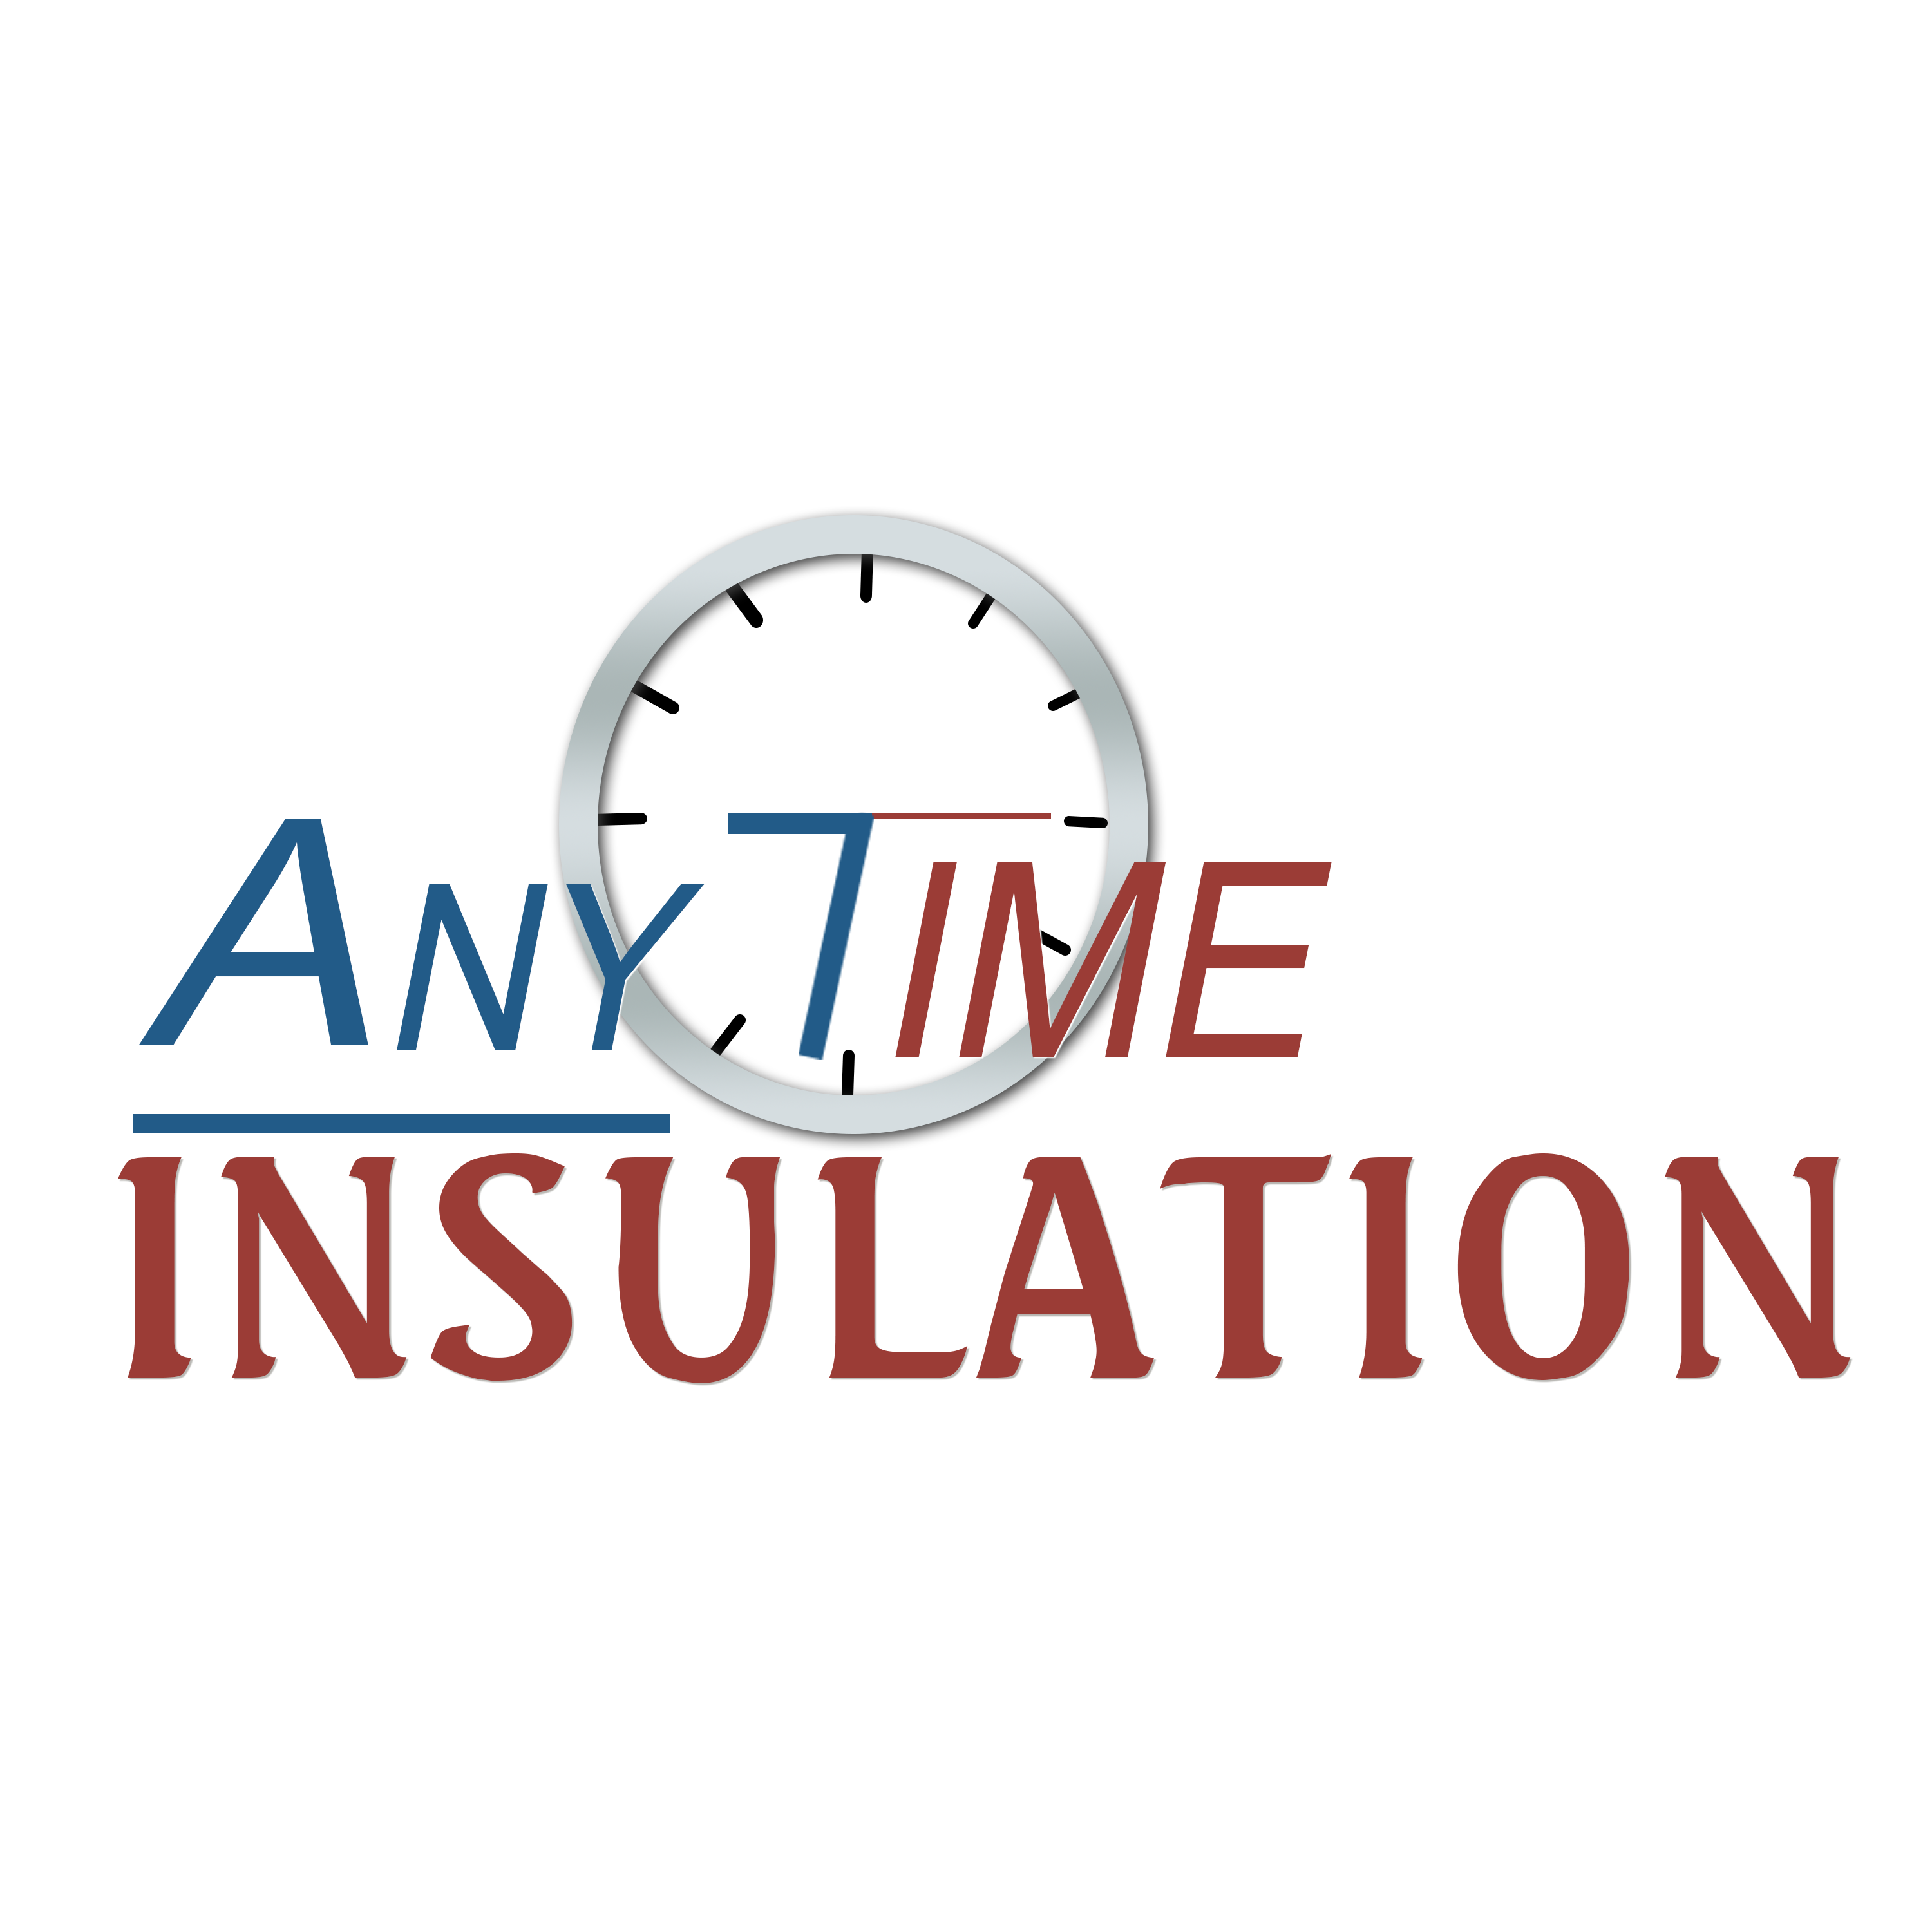 Anytime Insulation and Services